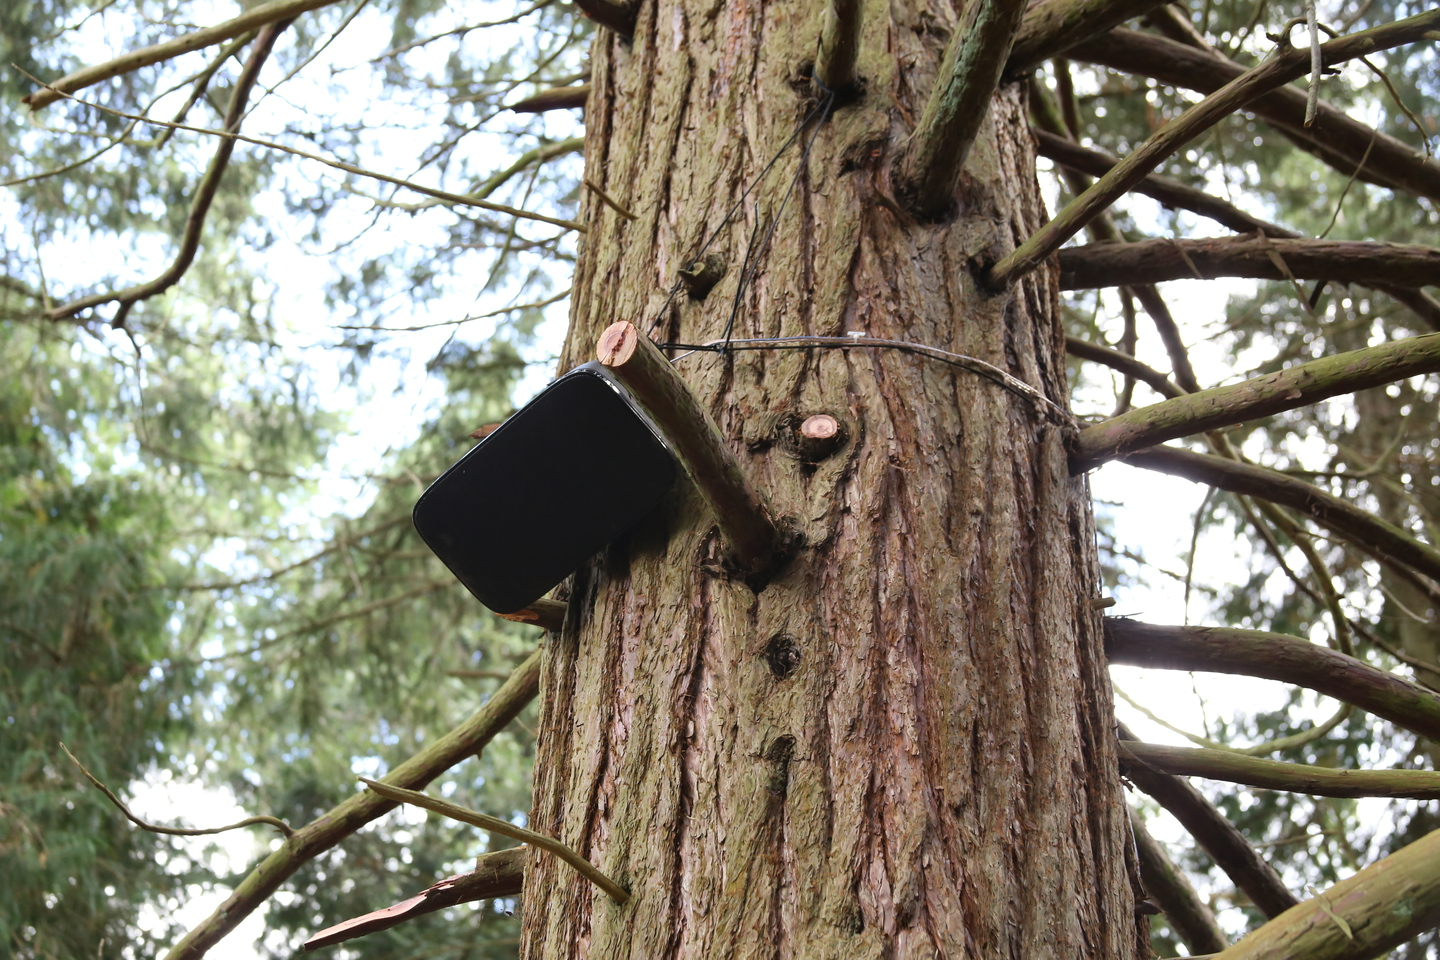 Bowers and Wilkins AM-1 in giant sequoia